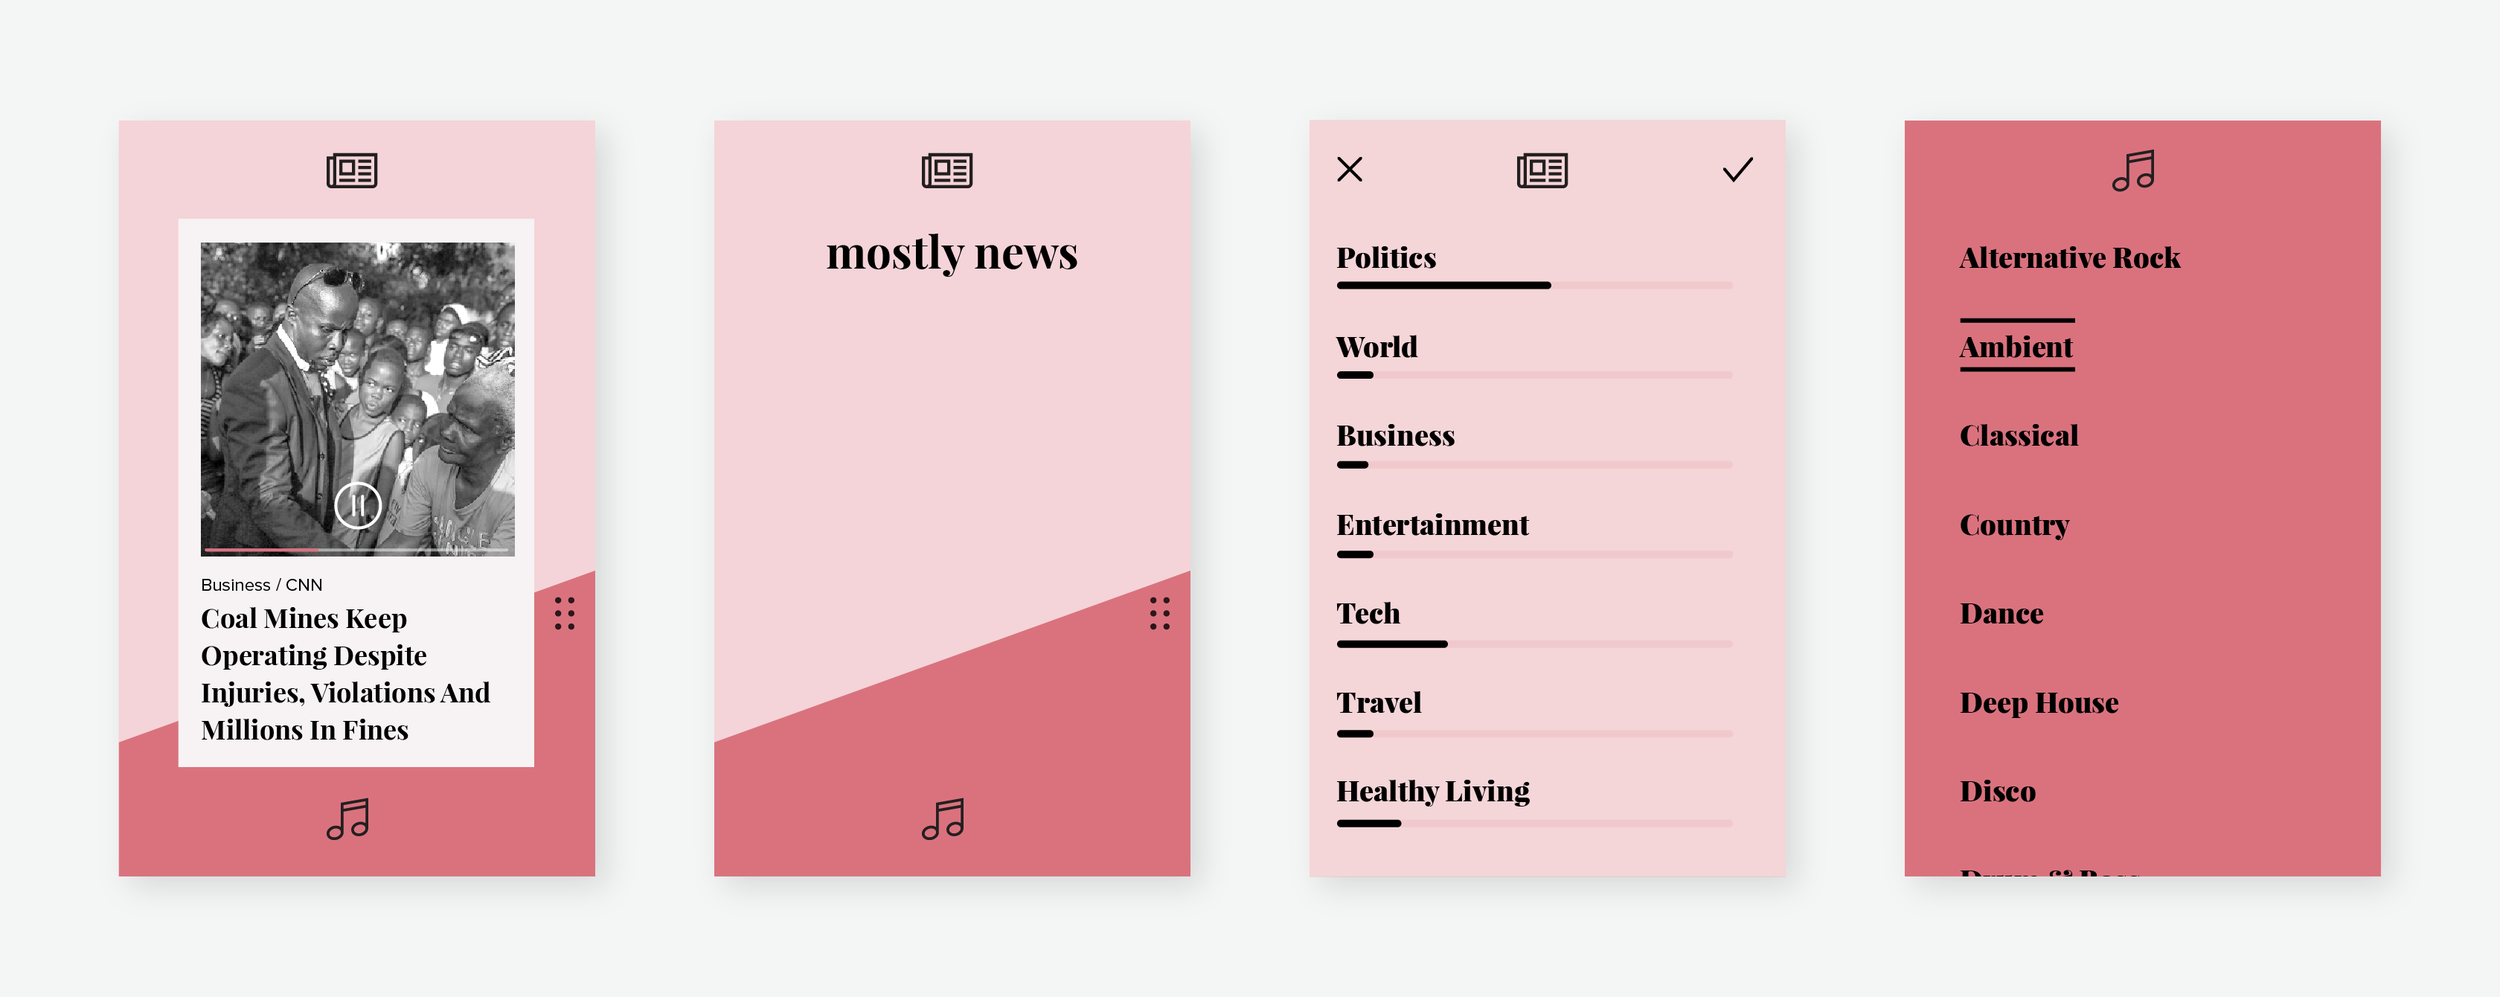 Laying the headline on a white ground made for easier parsing,and also evolved the visual style